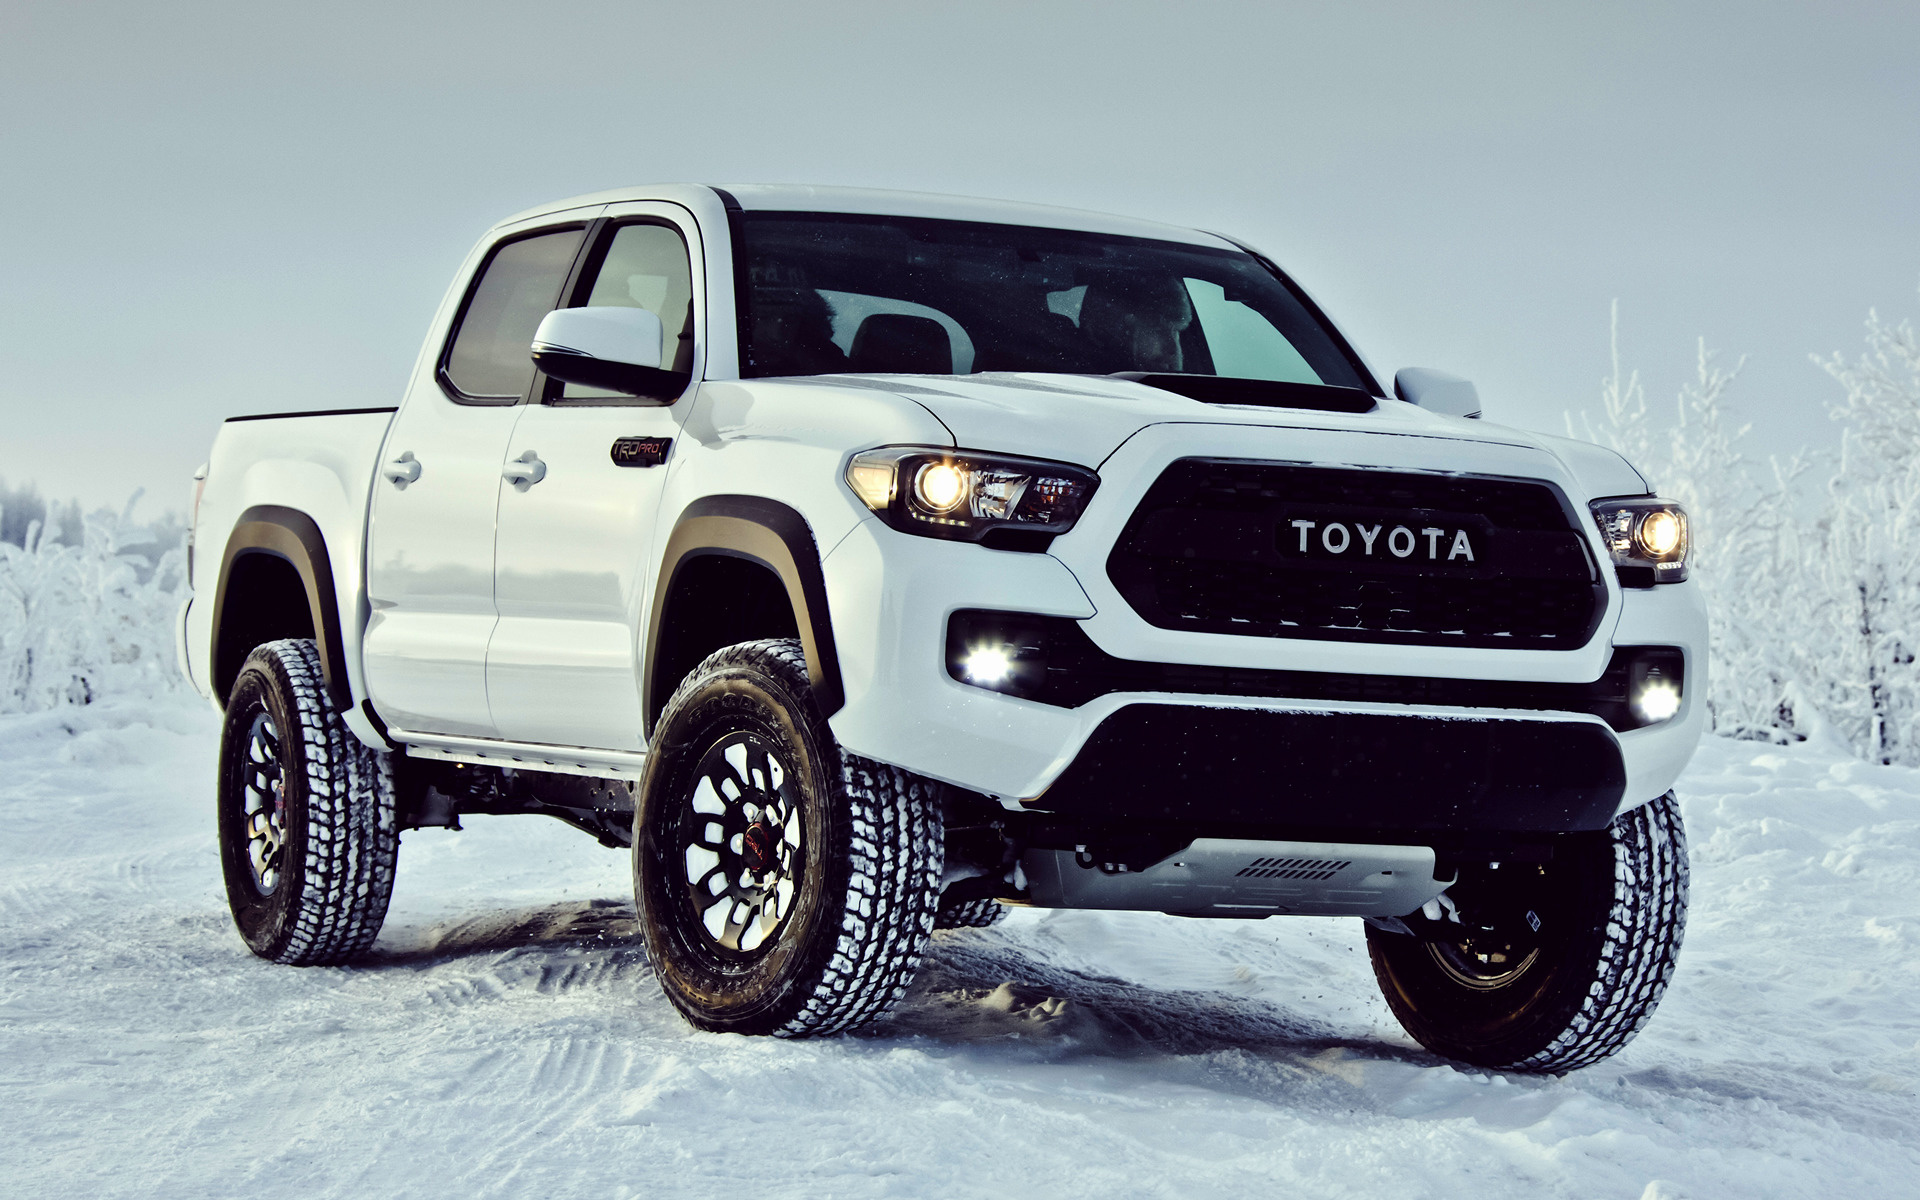 Toyota Tacoma TRD Pro Double Cab (2017) Wallpapers and HD ...